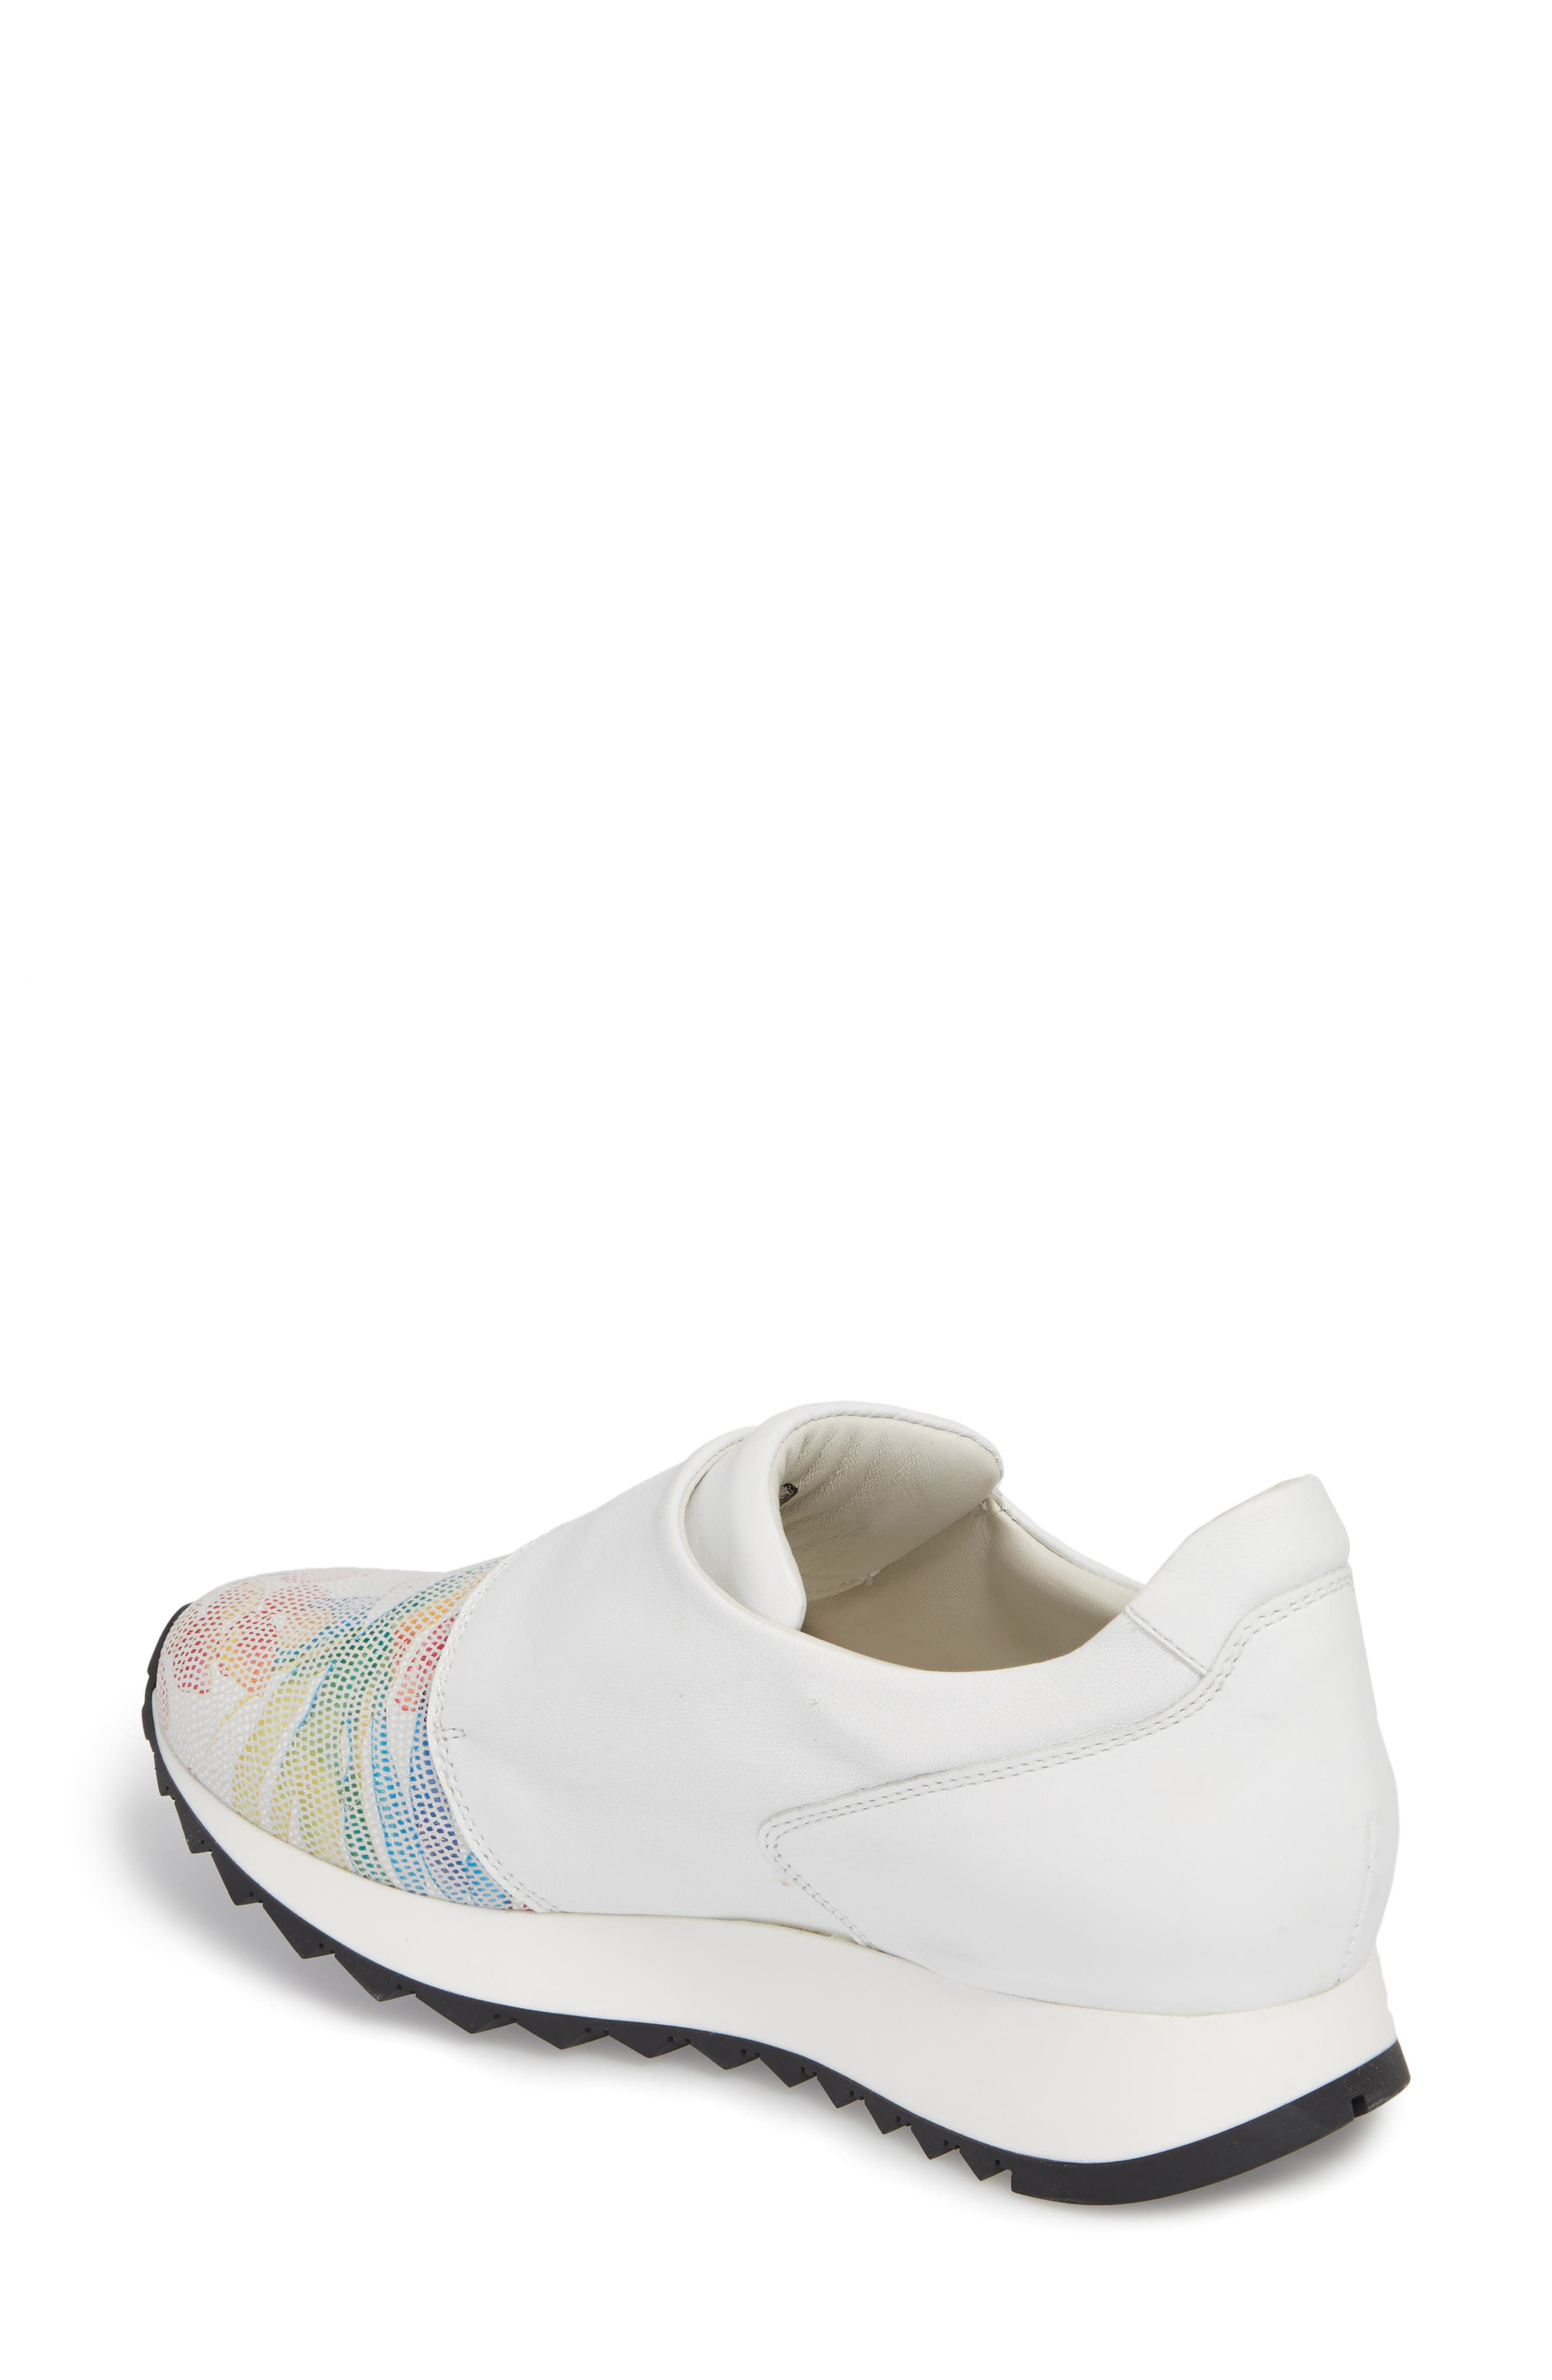 Danza Wedge Sneaker,                             Alternate thumbnail 2, color,                             WHITE LEATHER